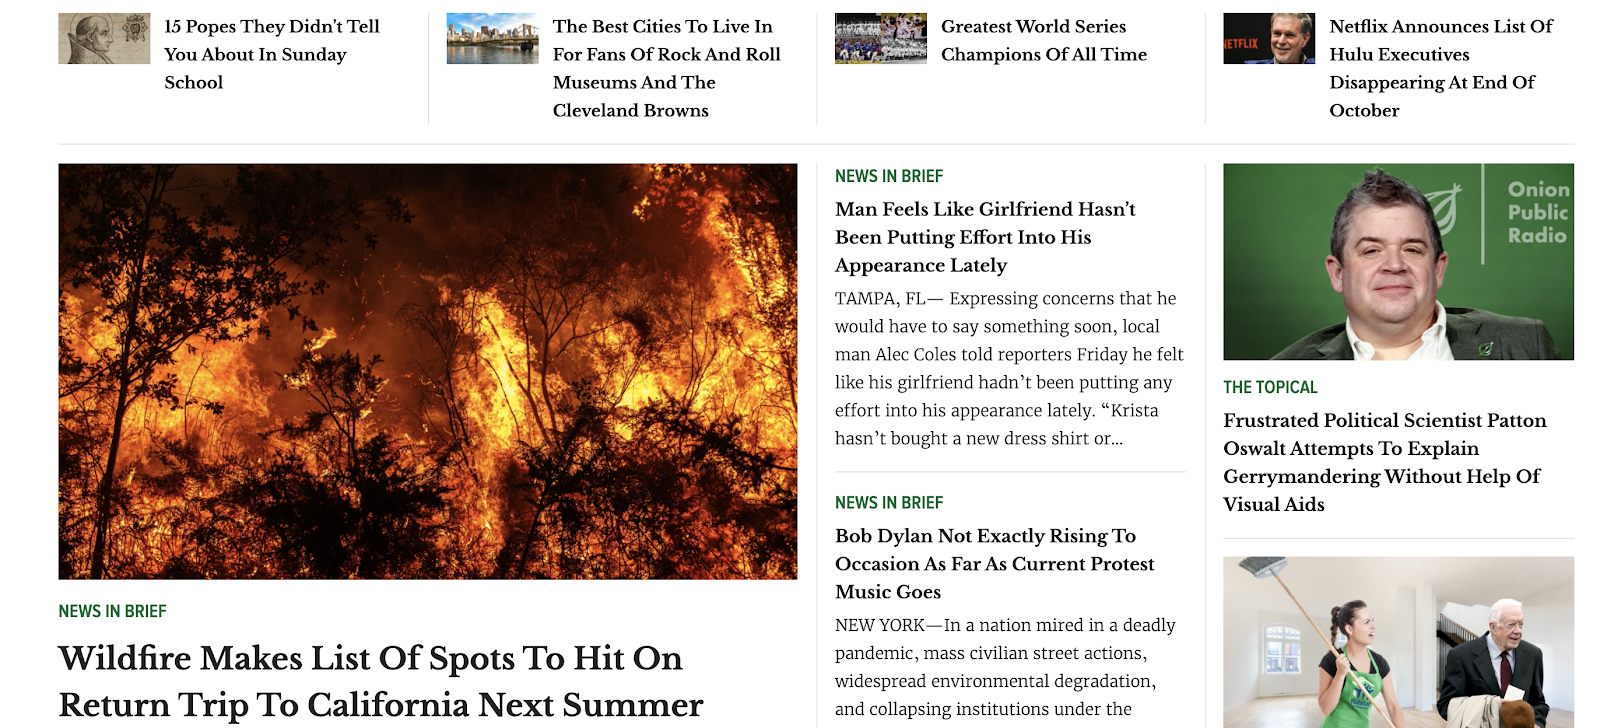 Example of satire - A screenshot of The Onion's homepage with images of wildfires and Patton Oswalt.